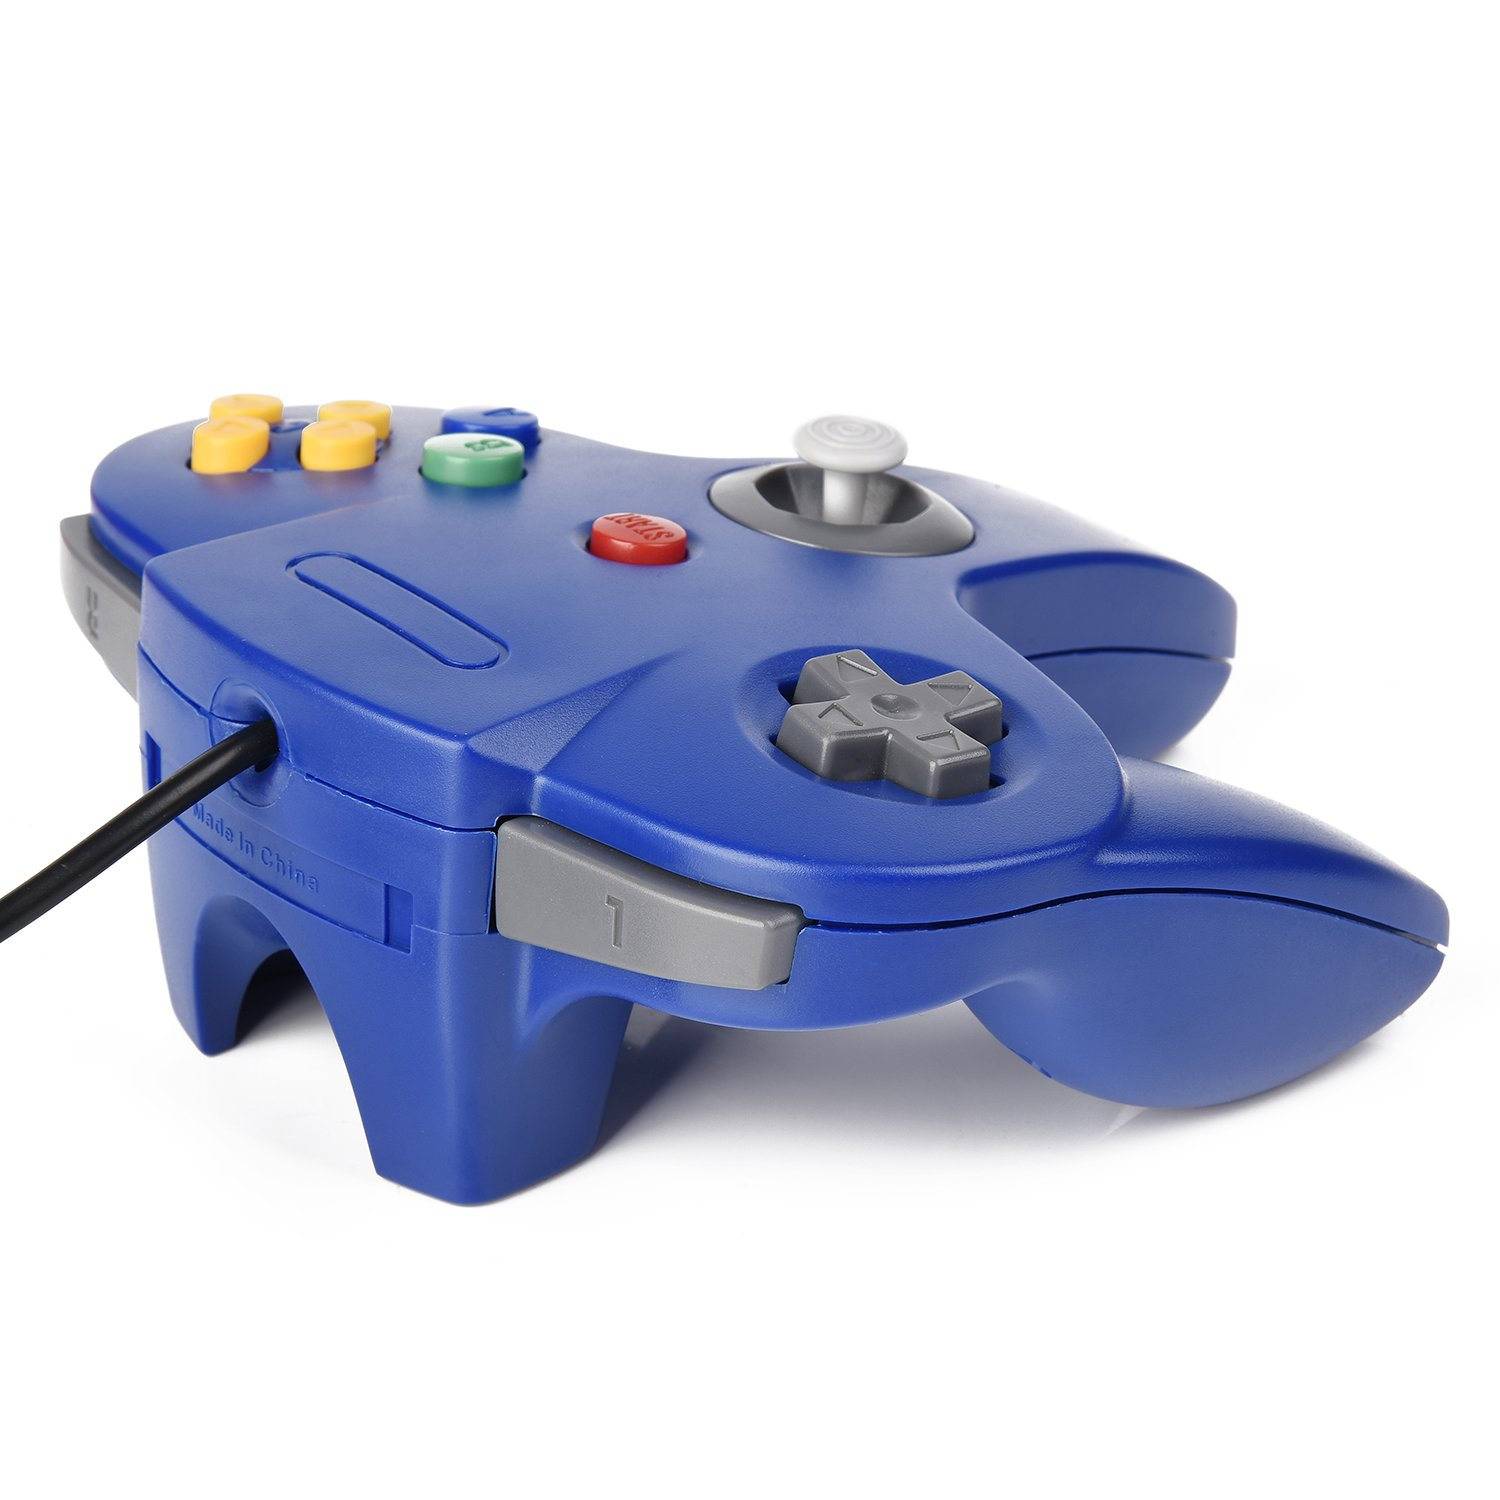 N64 Bit USB Wired Game Stick Joy pad Controller for Windows PC MAC Linux Raspberry Pi 3 Genesis Higan Classic N64 Controller Gray iNNEXT N64 Wired USB PC Game pad Joystick